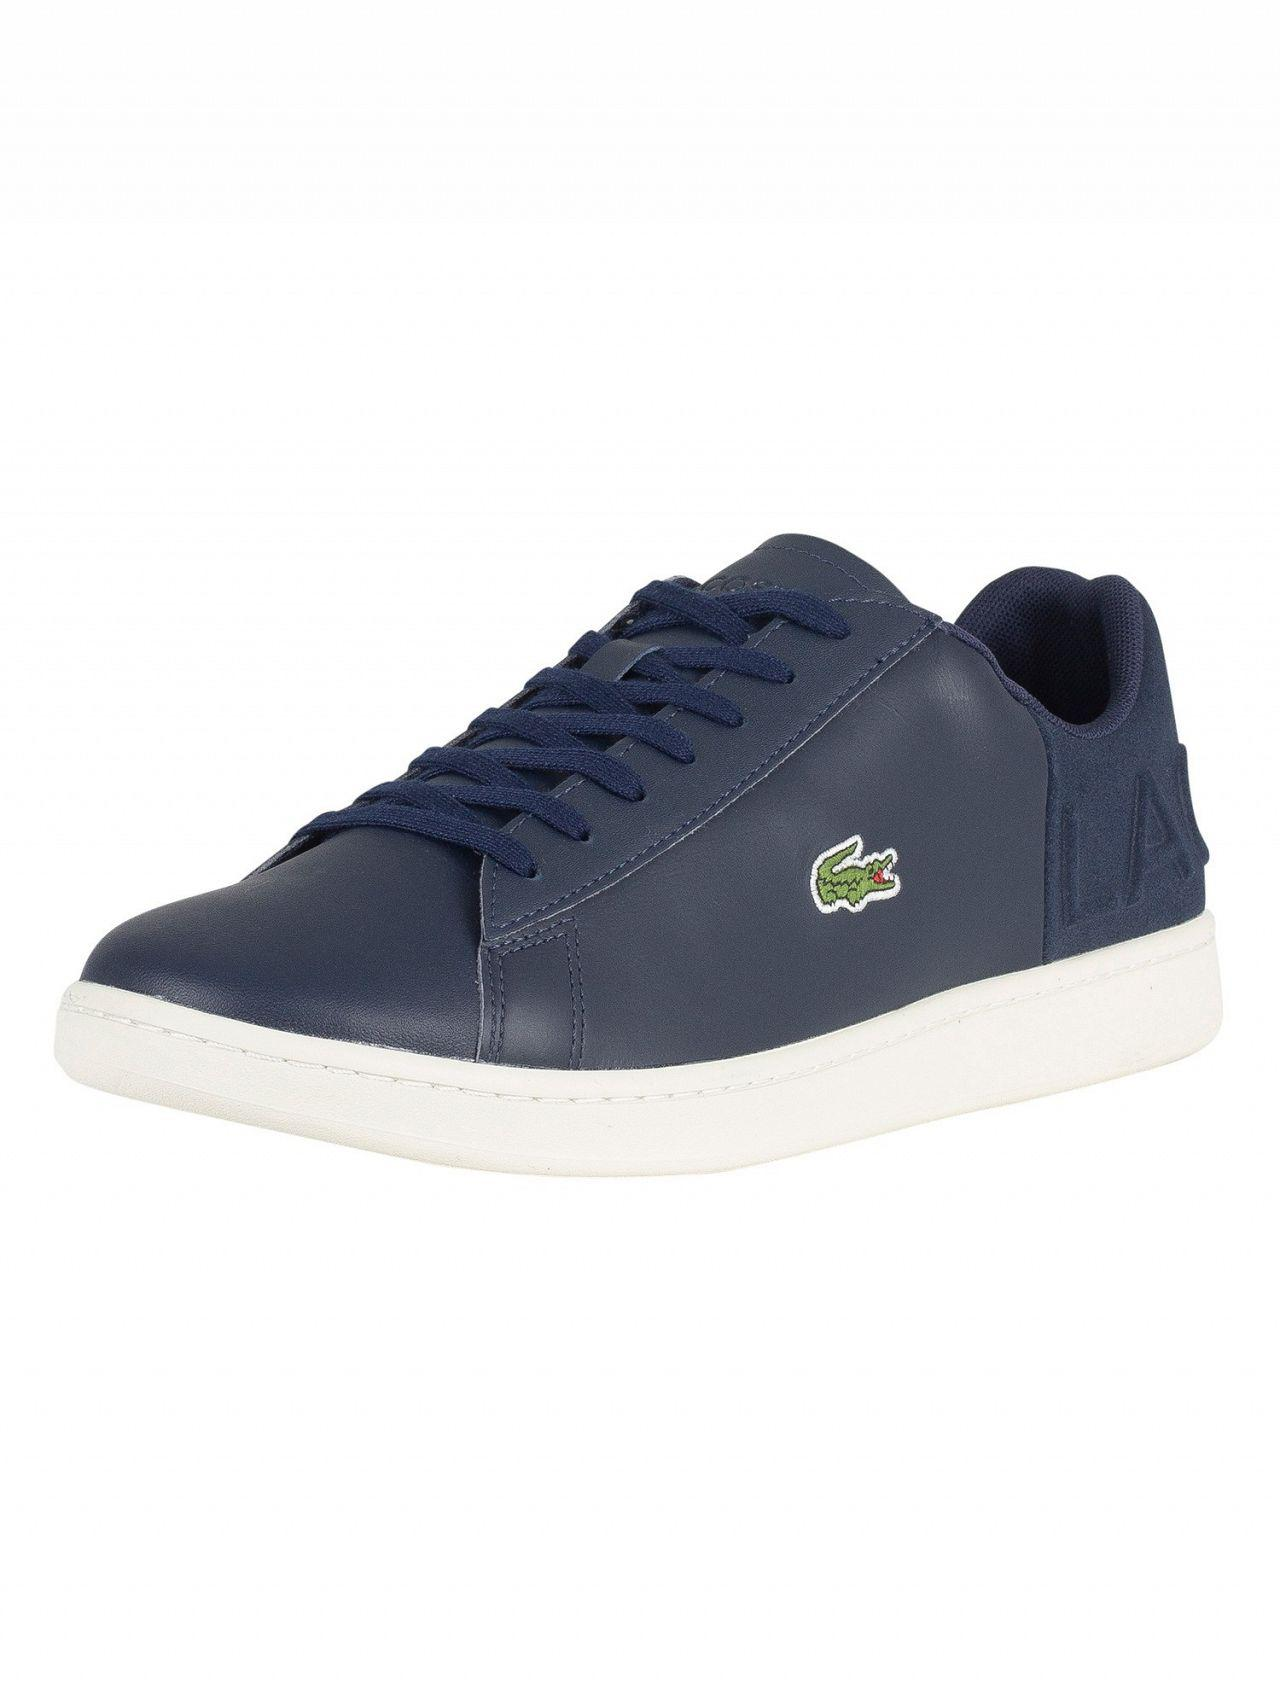 4cc5ac021626d1 Lacoste Navy off White Carnaby Evo 418 1 Spm Leather Trainers in ...